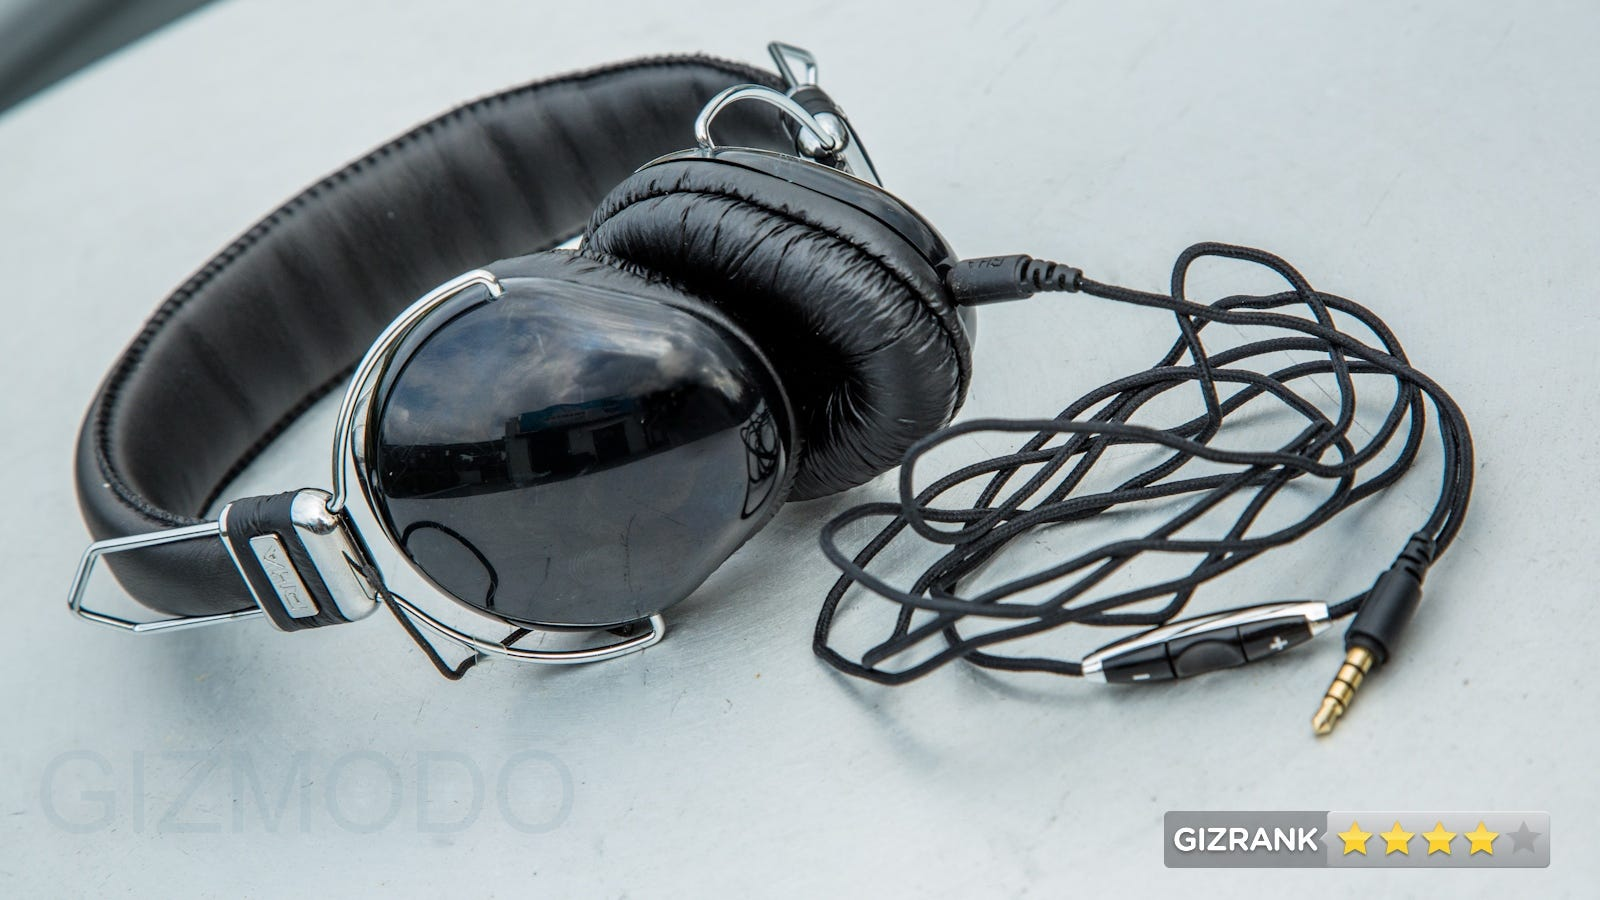 philips chromz upbeat earbuds - RHA SA950i Review: The Perfect Pair of Cheap Headphones